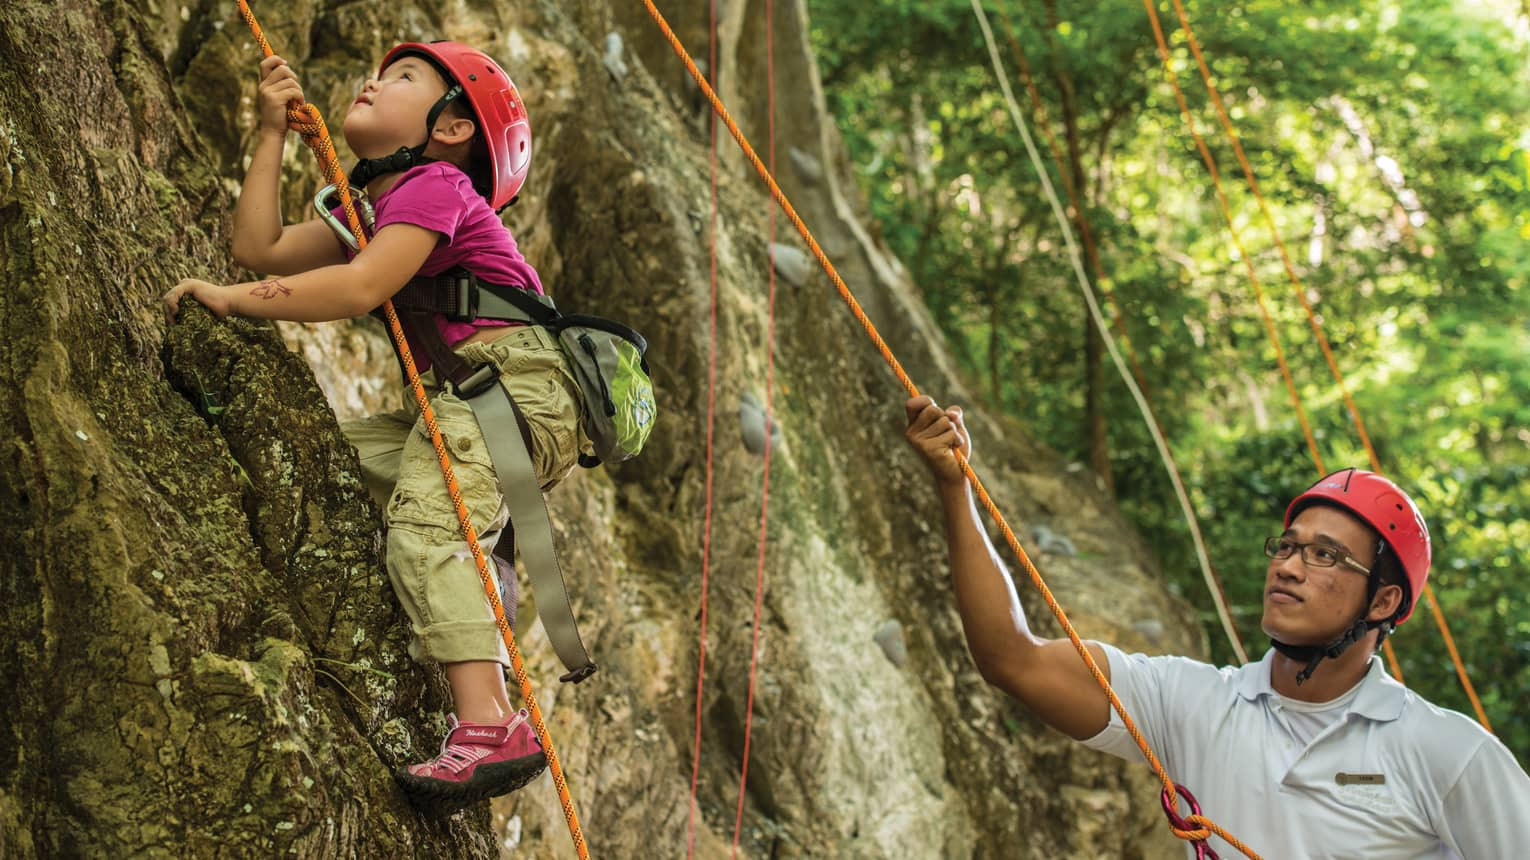 Man holds rope, helps young girl wearing helmet climb rock face